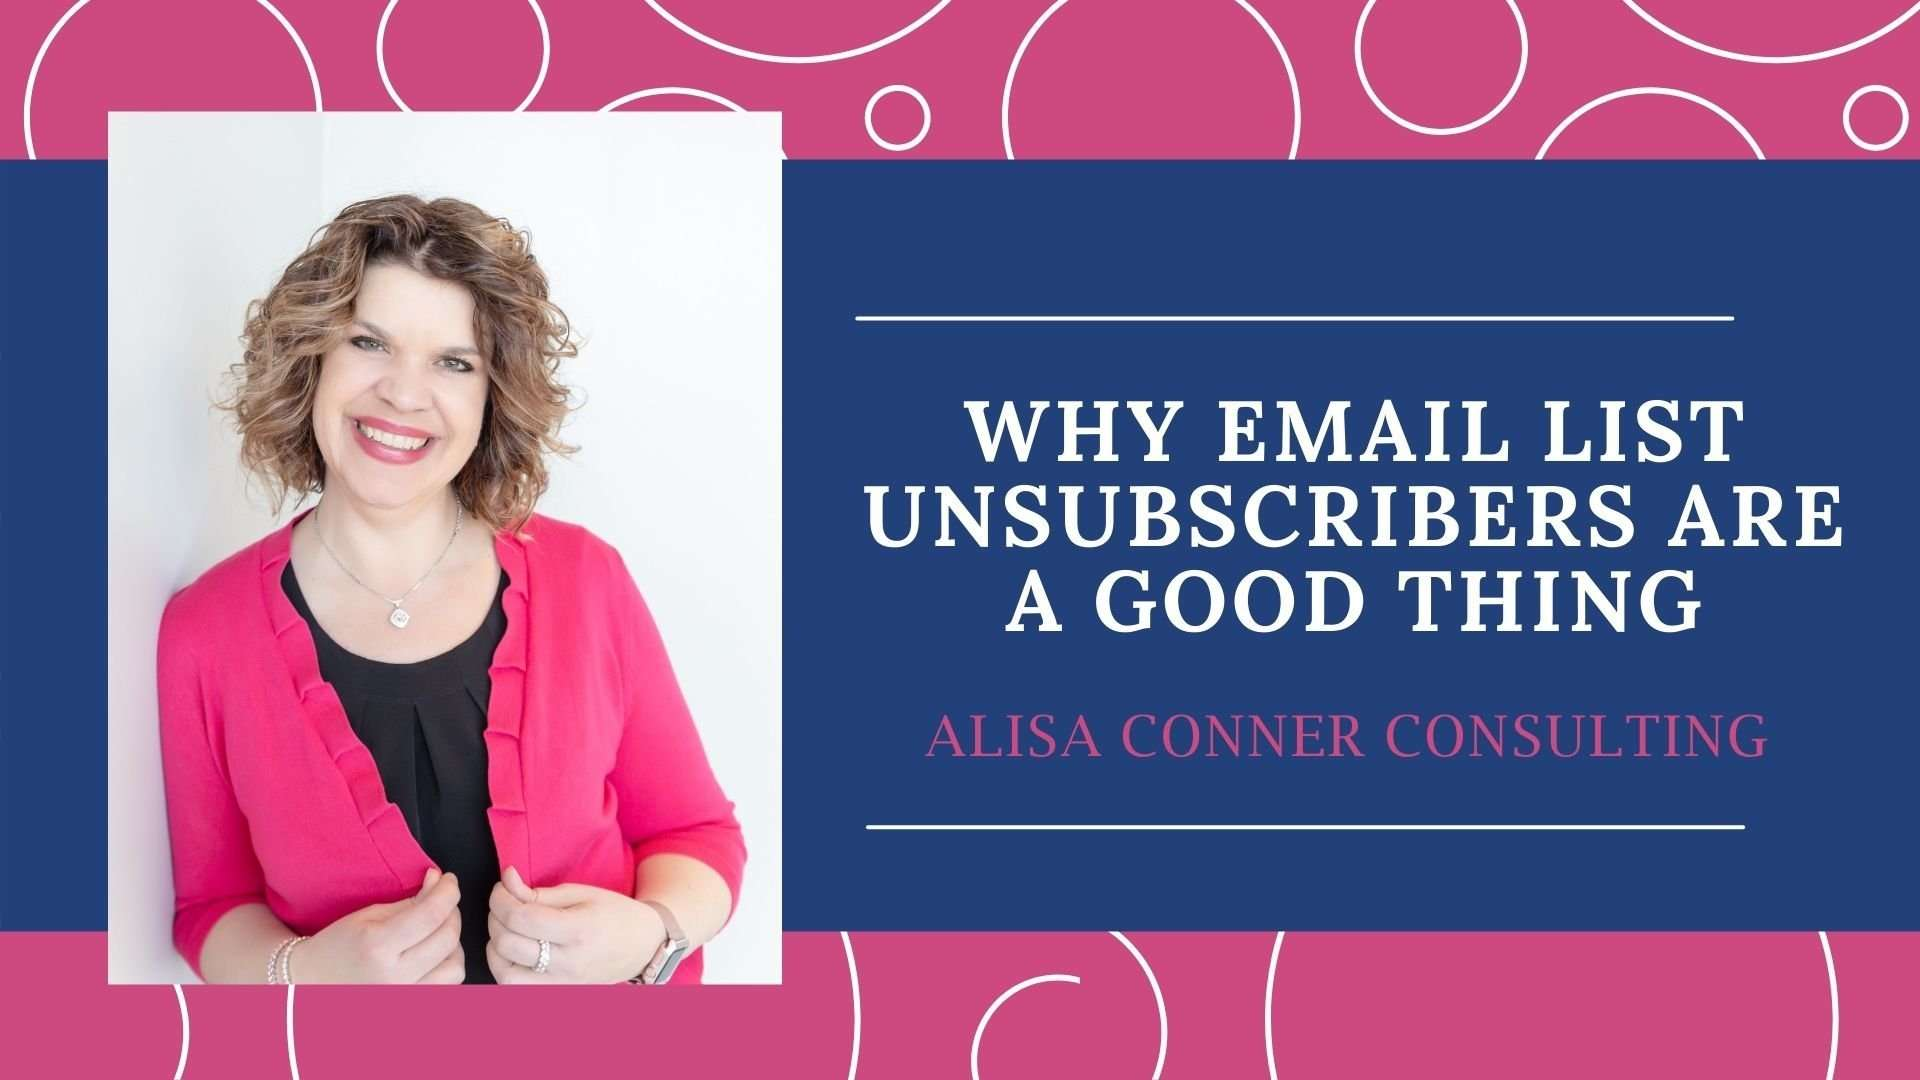 Why Email List Unsubscribers Are A Good Thing